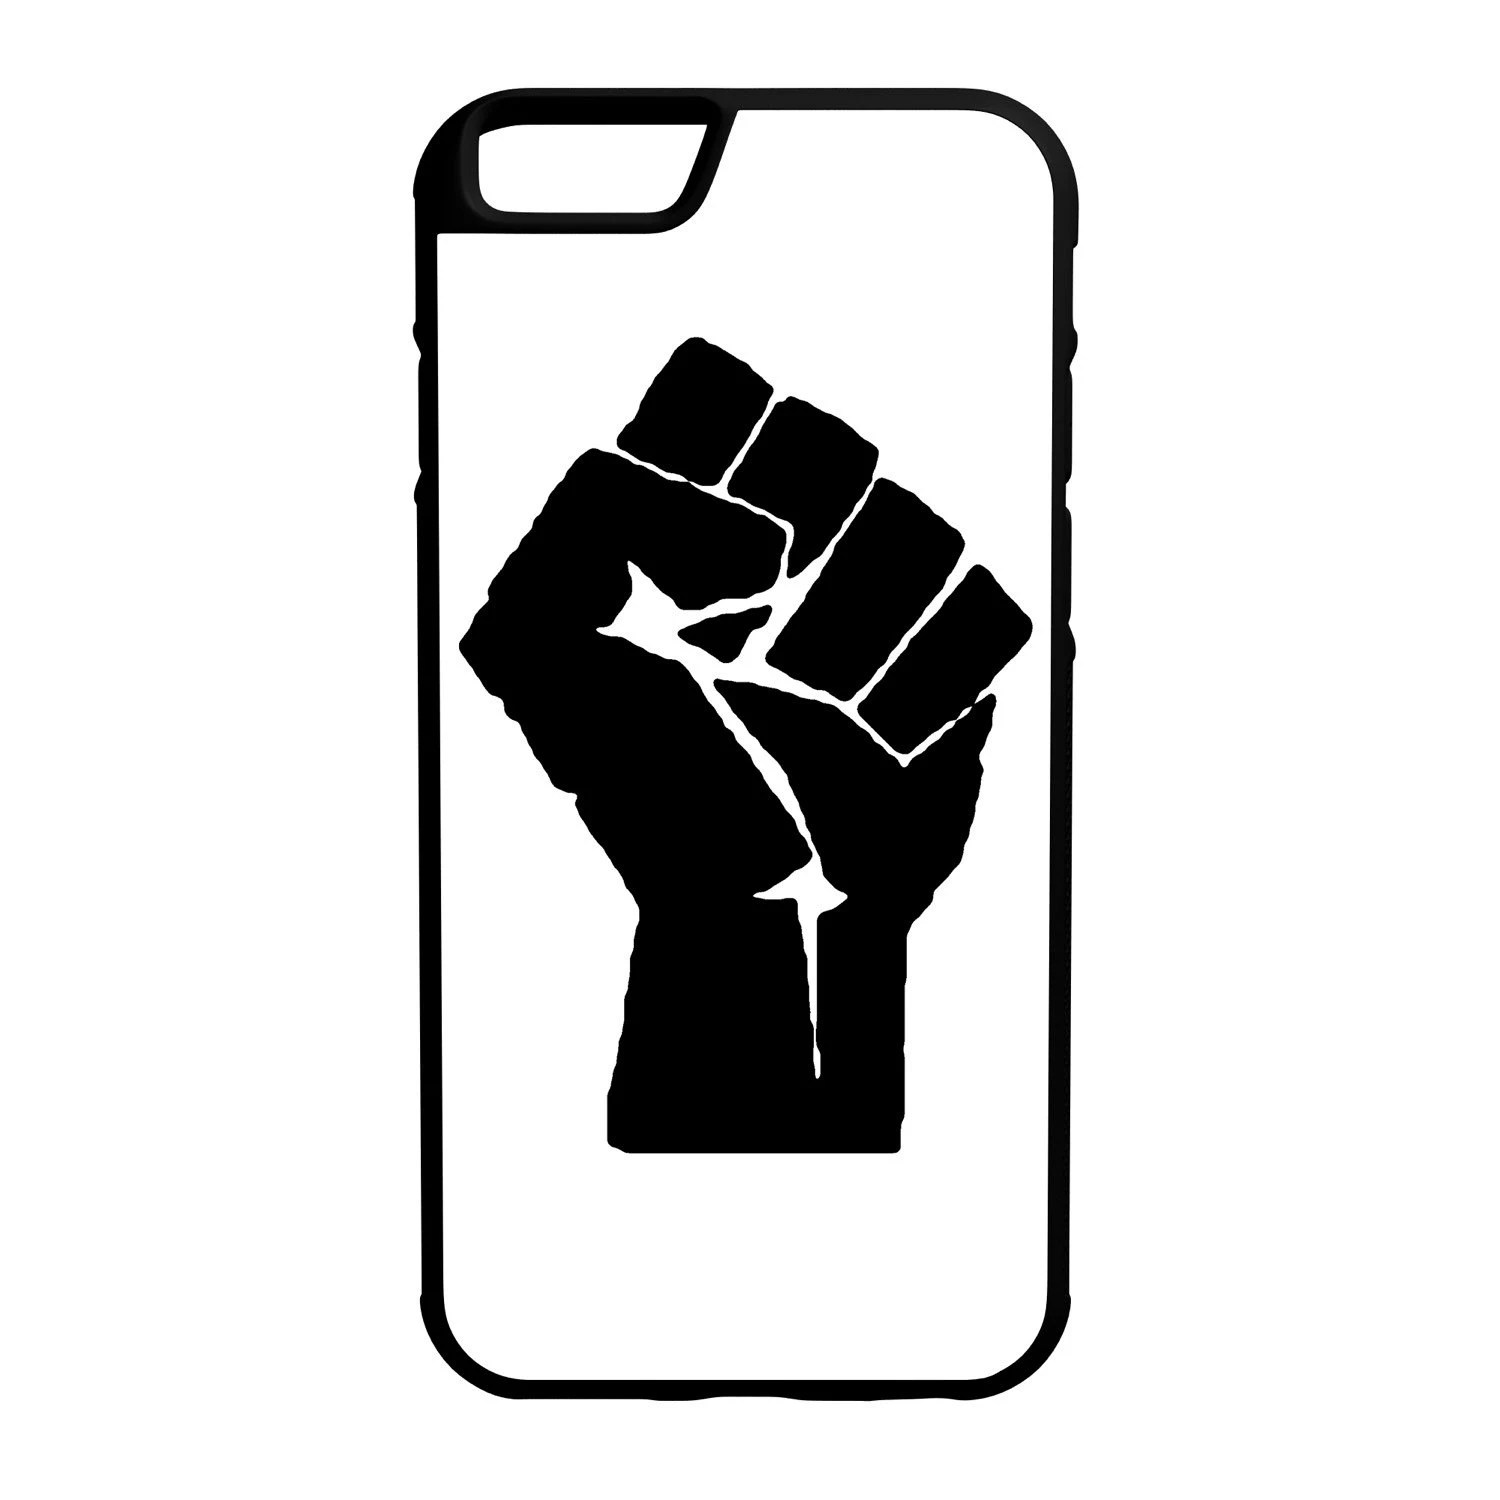 Raised Fist iPhone Galaxy Note LG HTC Protective Hybrid Rubber